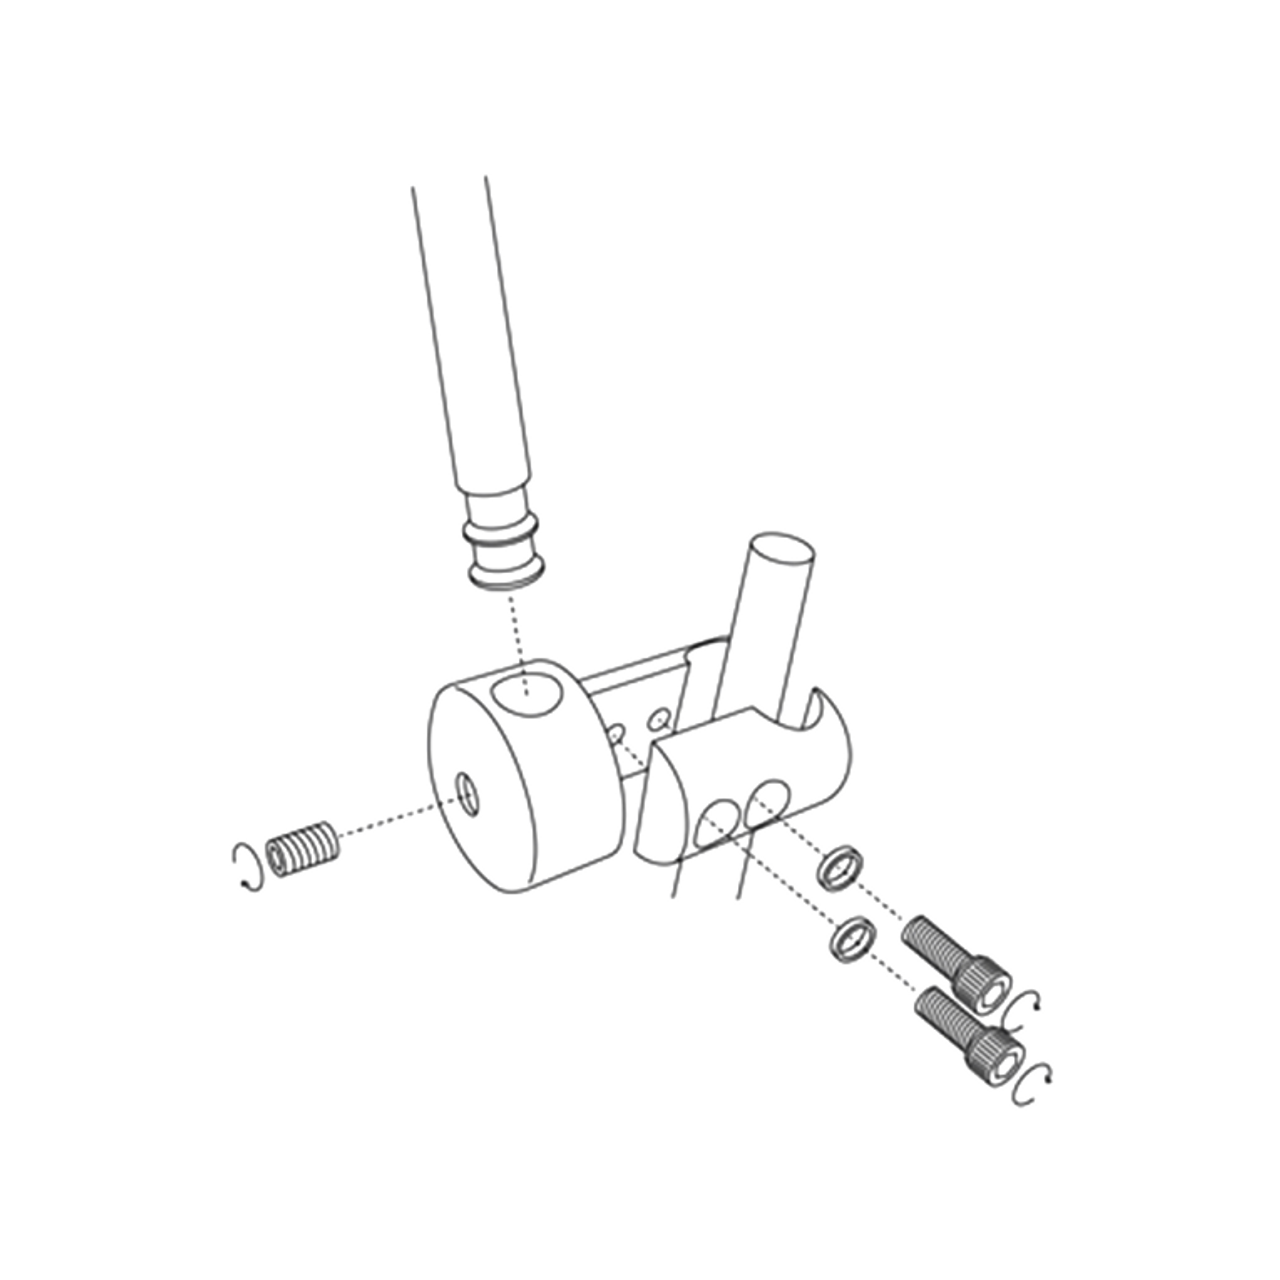 RDSB5 exploded view